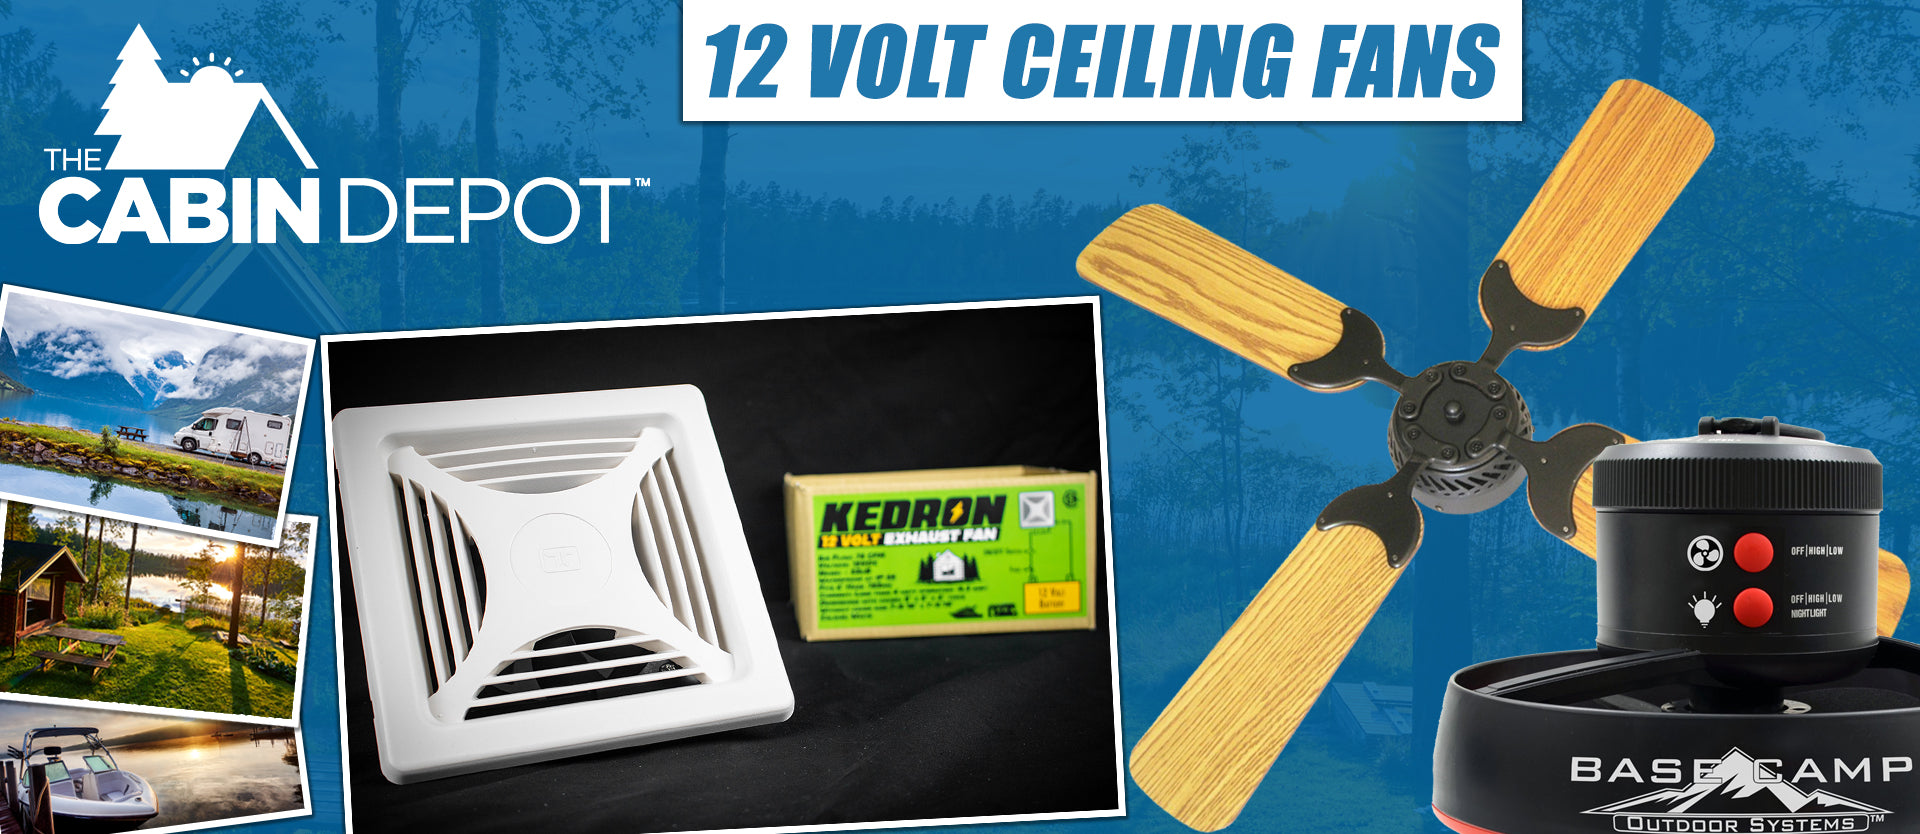 12V Ceiling Fan The Cabin Depot ™ Canada